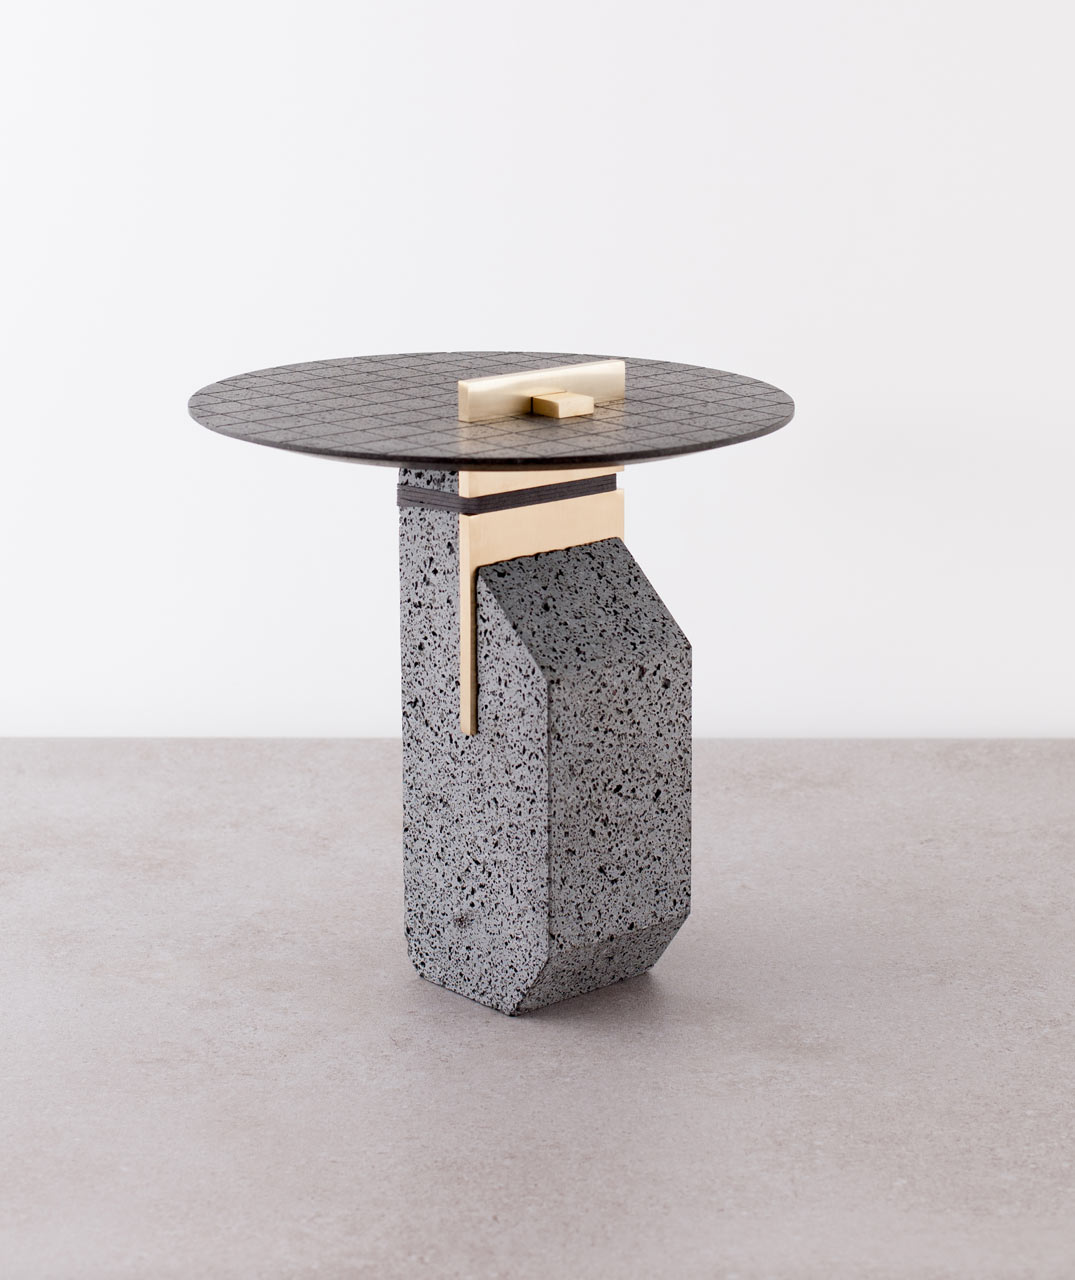 Name of work : Small Pillar Materials: Basalt, Occhio di pernice basalt, brass, textile Dimensions: 35X35Xh50 cm